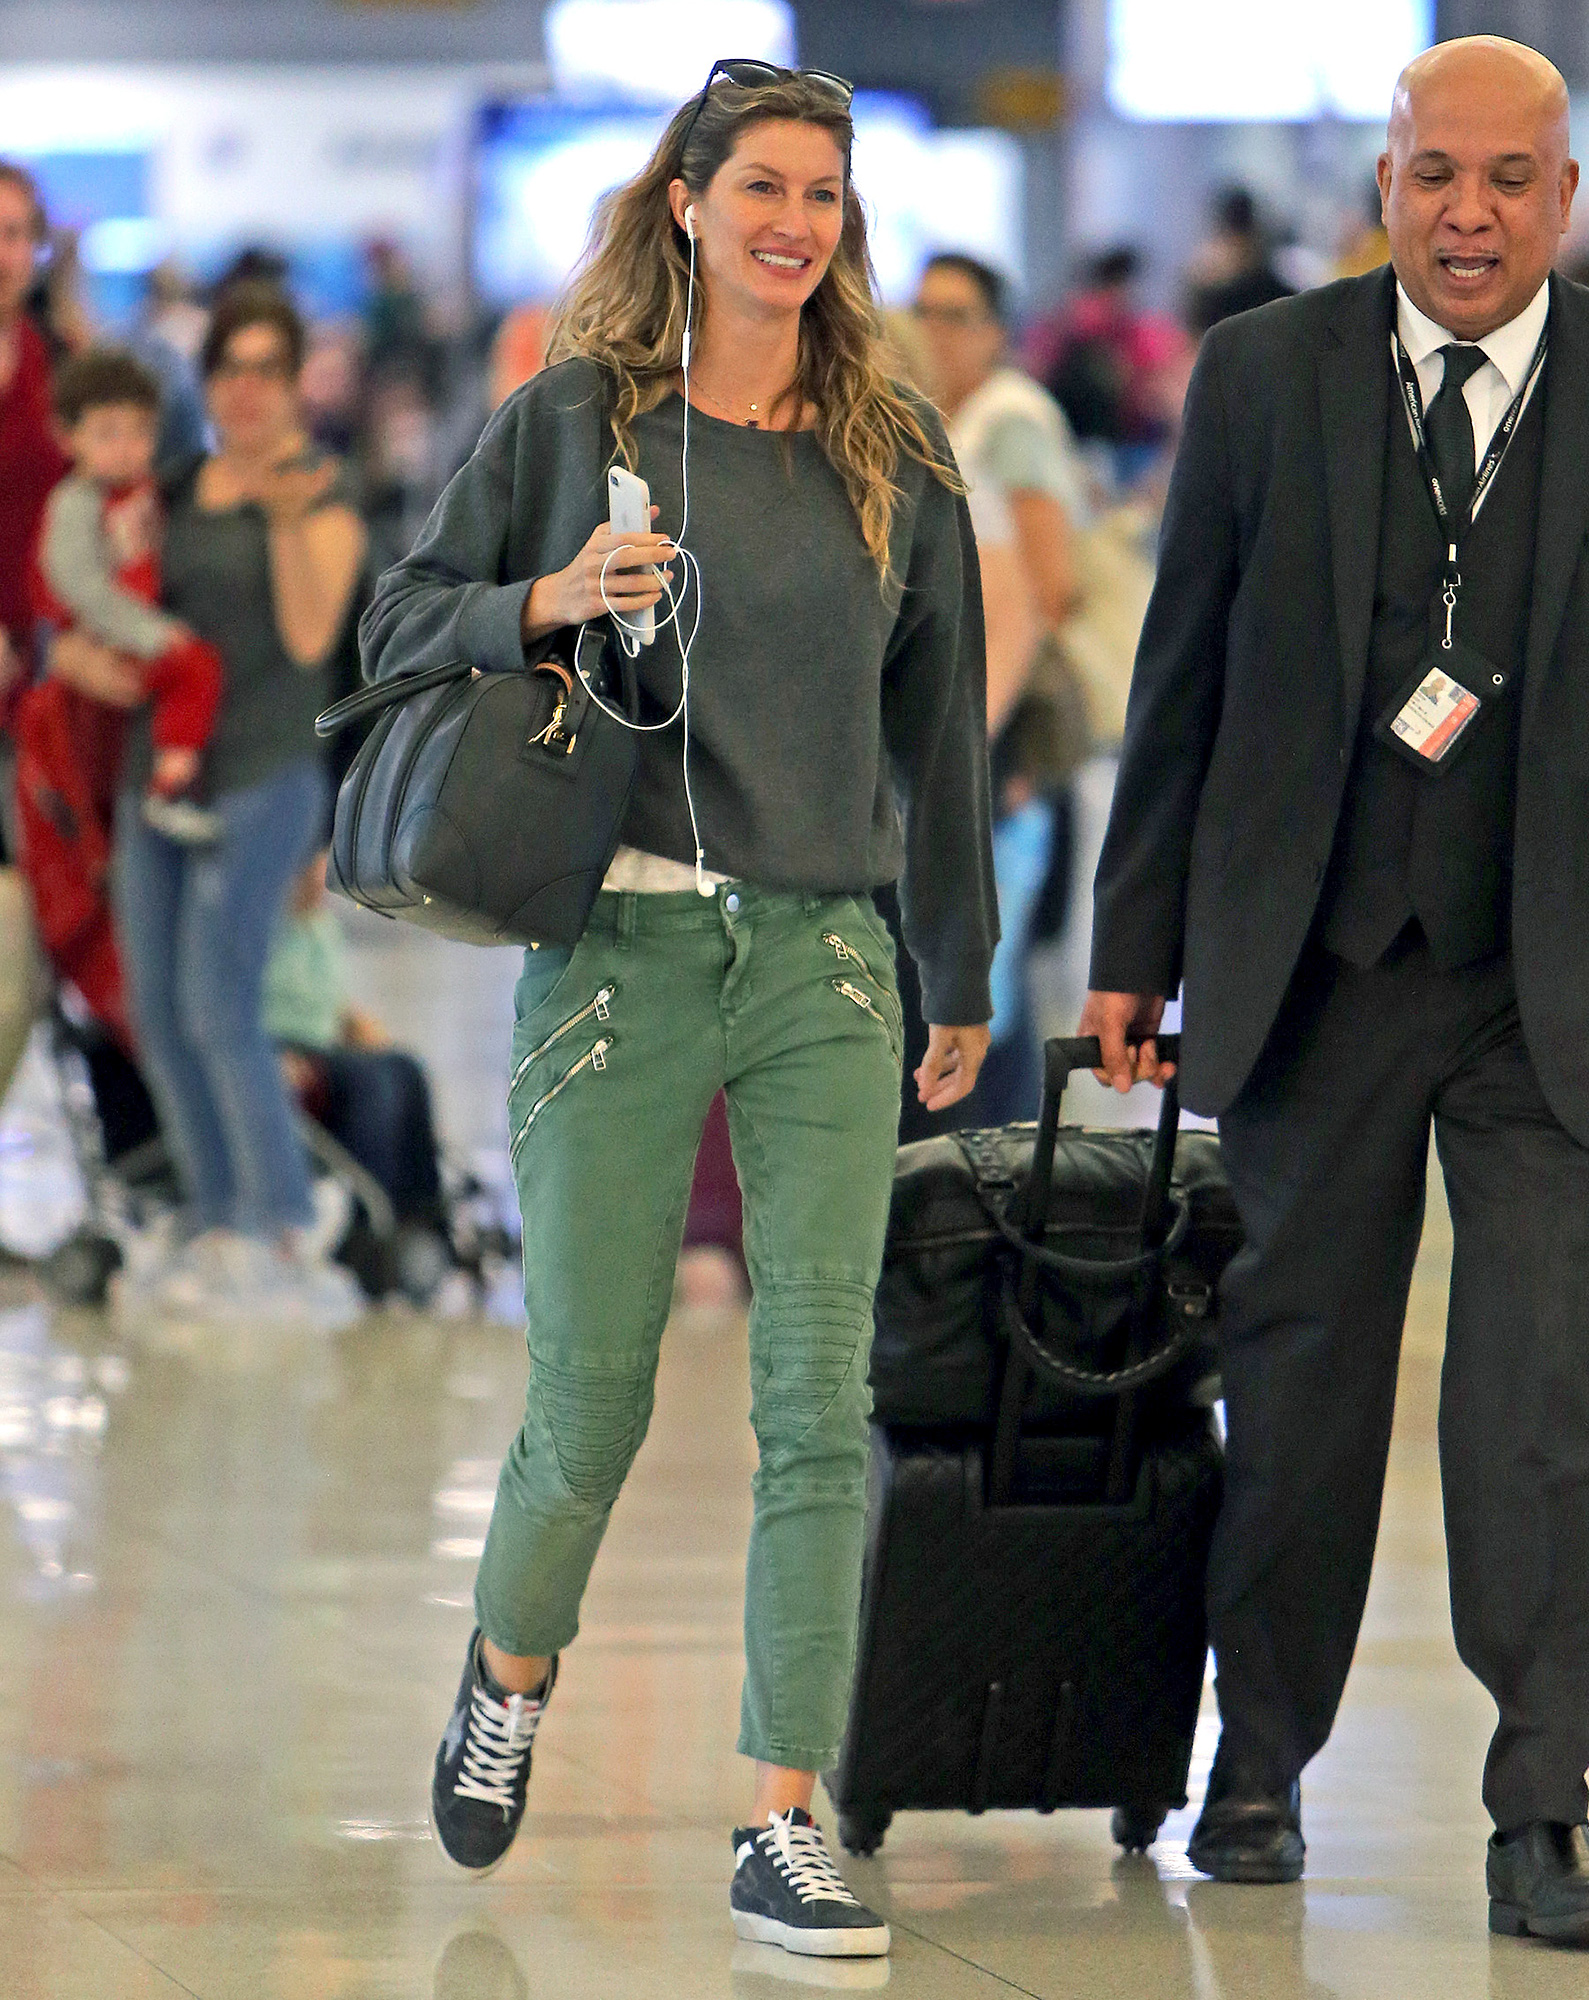 EXCLUSIVE: Fashion Icon Gisele Bundchen all smiles while joking with her greeter while touching down at JFK airport in New York for a connecting flight from Boston Massachusetts.